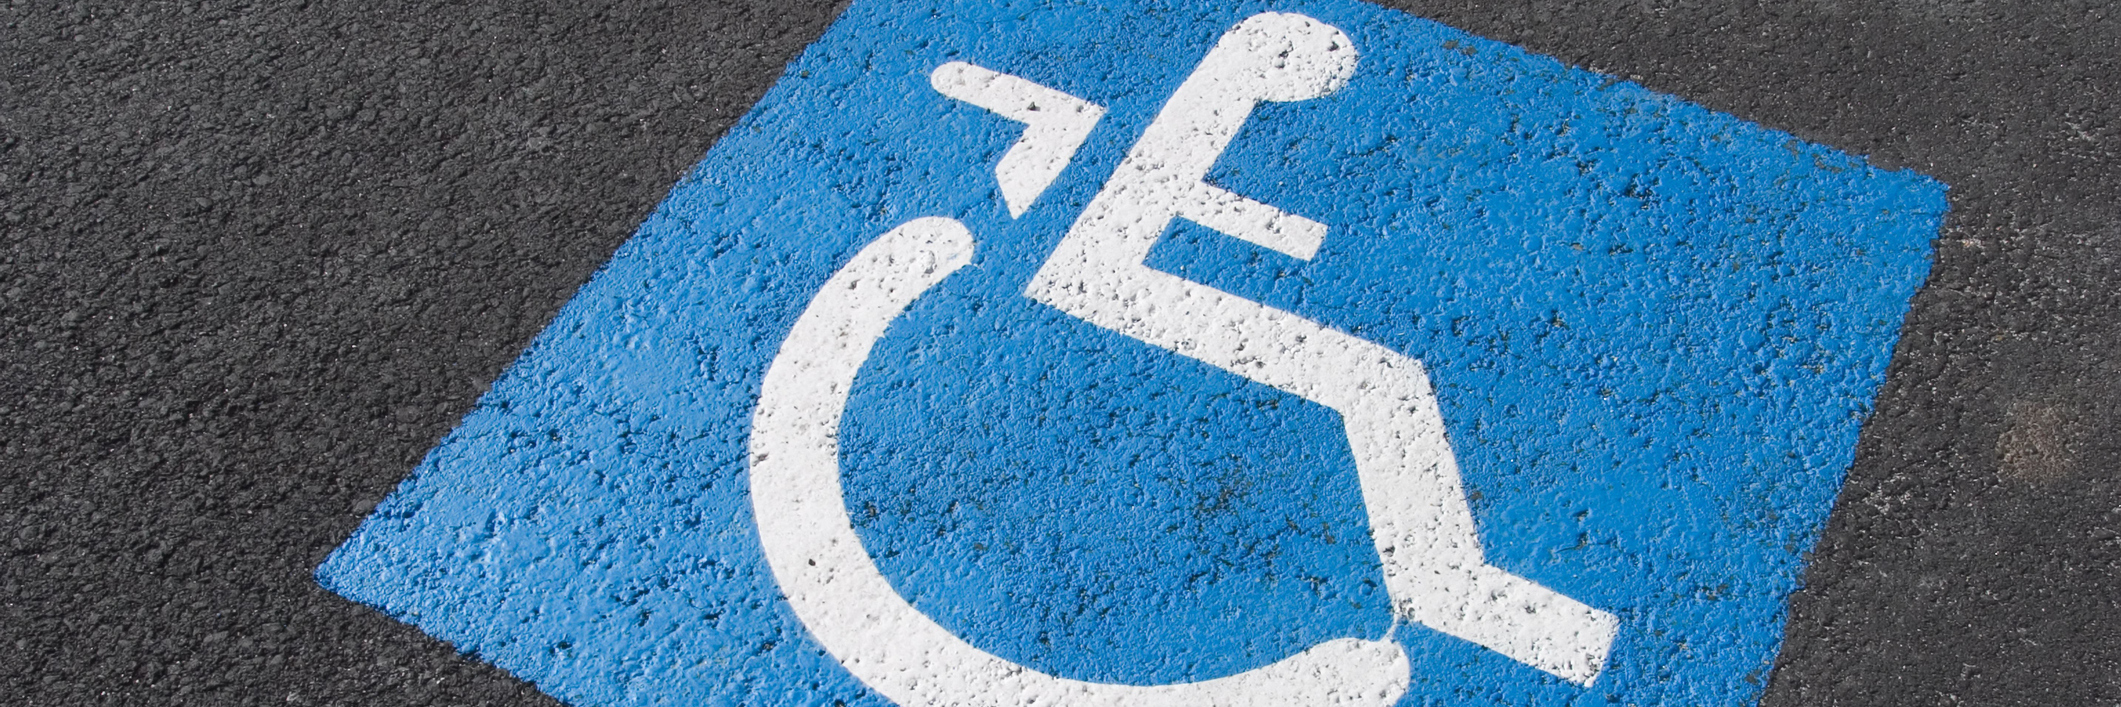 disability symbol in parking space